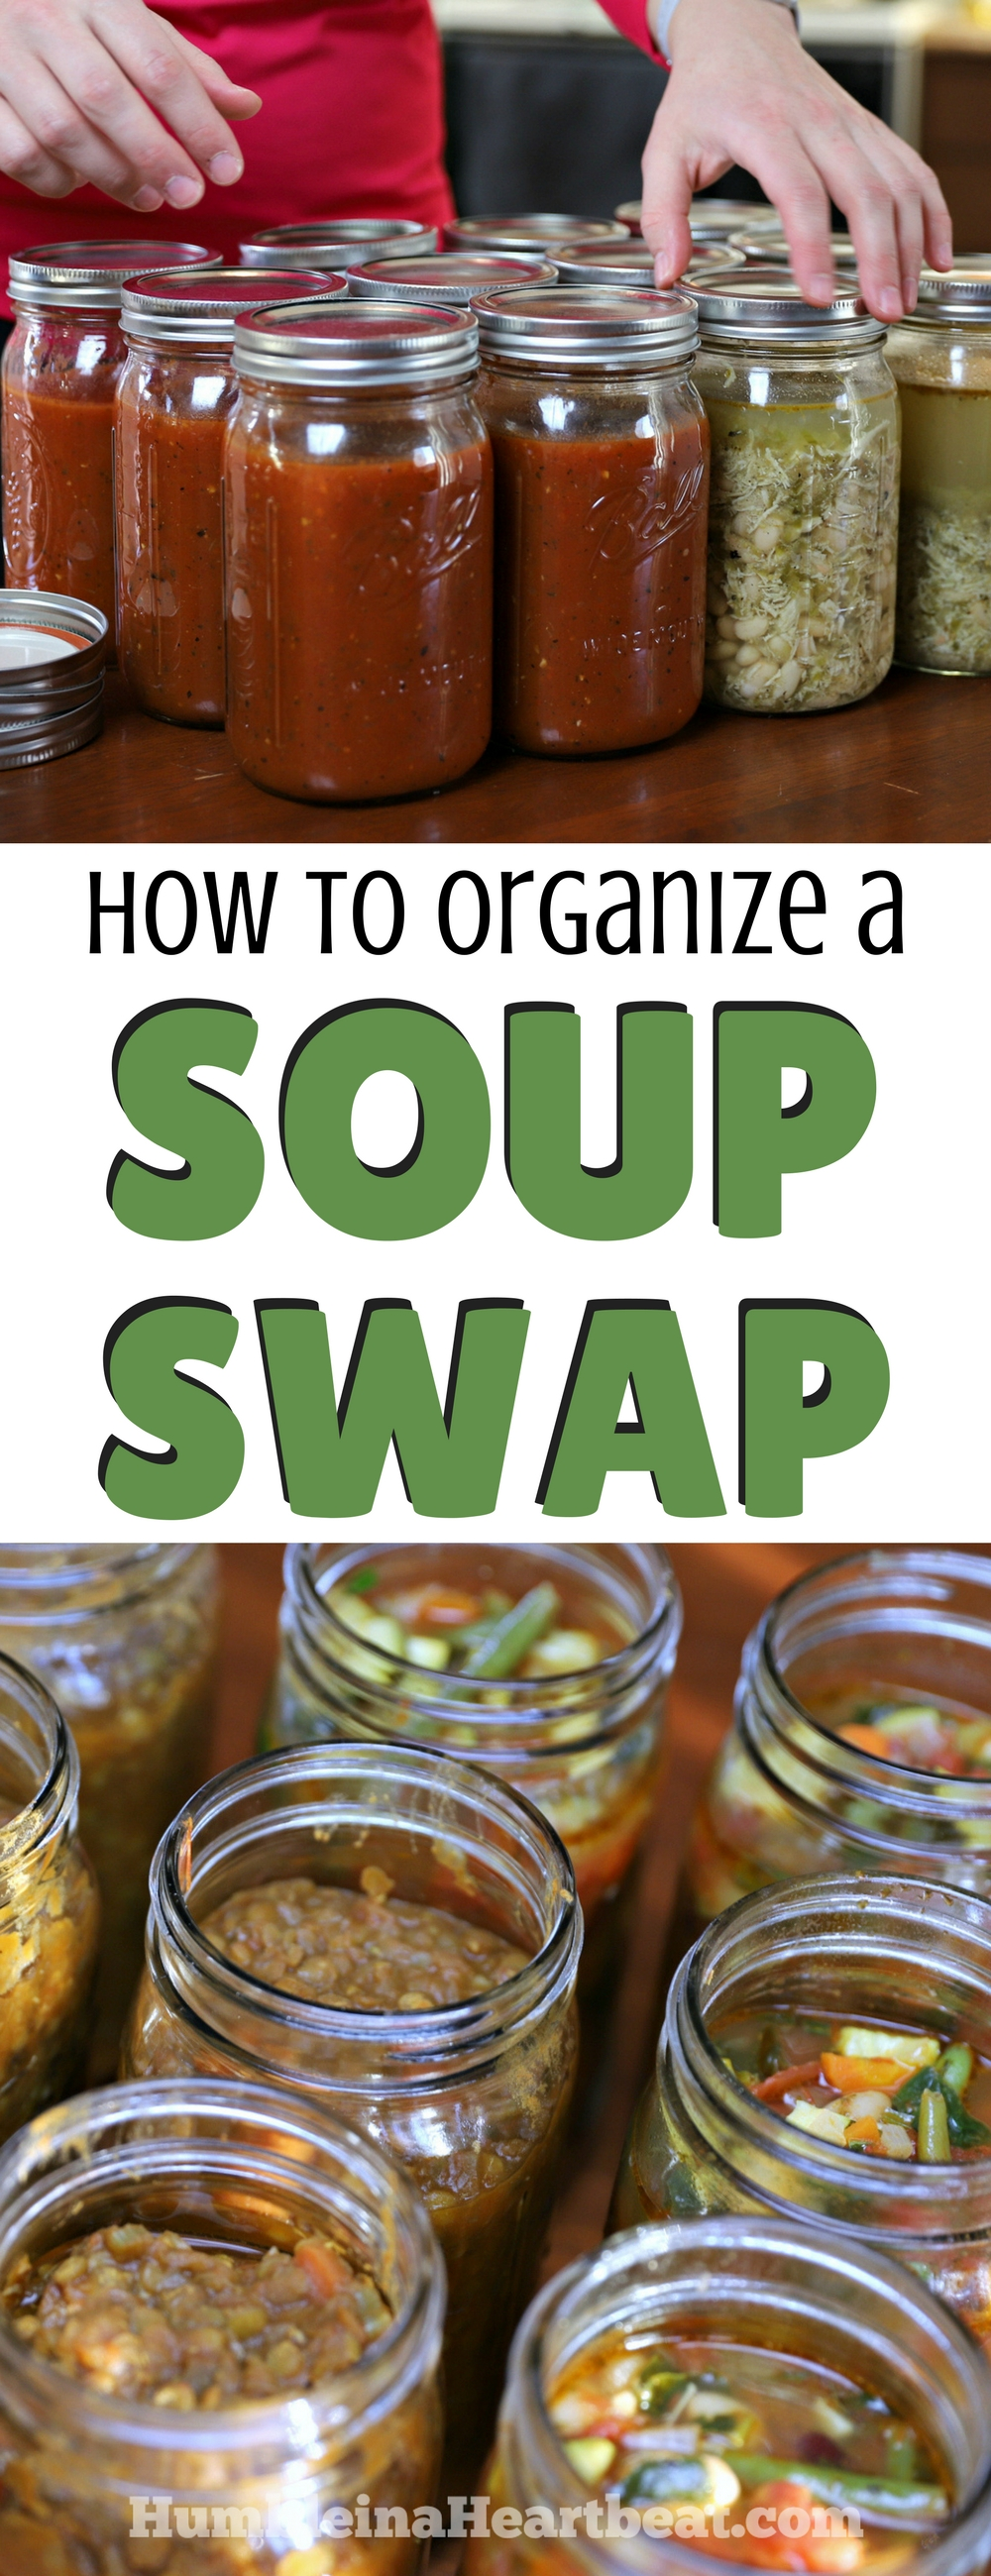 You need to get with your girlfriends and do a soup swap! It's so easy to organize, and you'll be able to stock your freezer with soup while getting some adult time with your friends! #freezermeals #quickmeals #soup